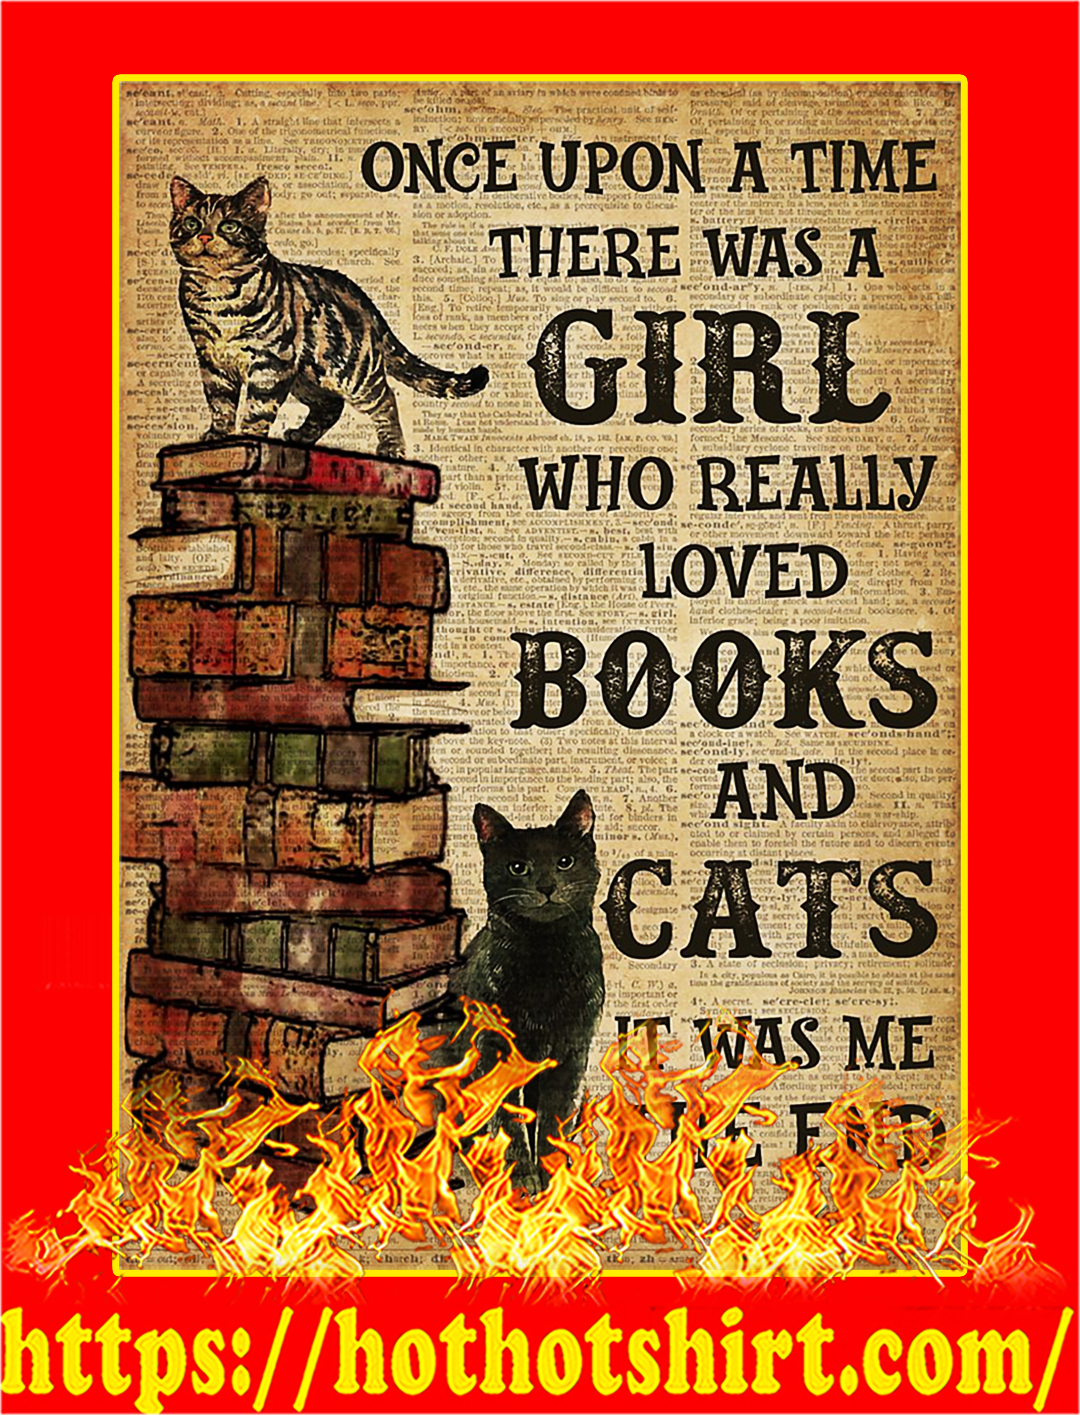 Once Upon A Time There Was A Girl Loved Books And Cats Poster - A1